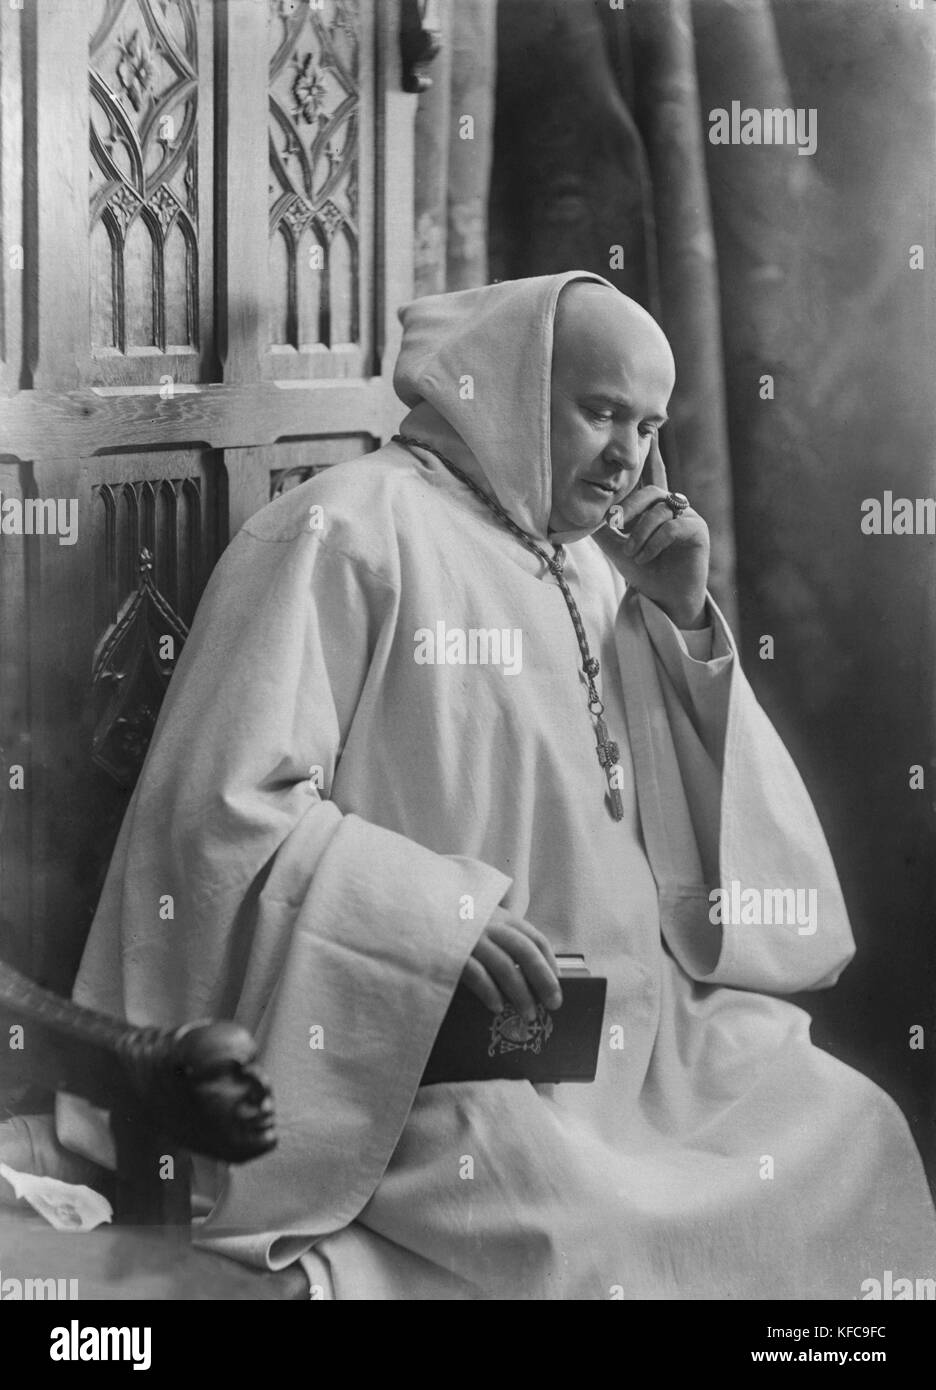 Cardinal Marre, abbot of Notre Dame d'Igny where Joris Karl Huysmans made his retirement of conversion to catholicism Stock Photo